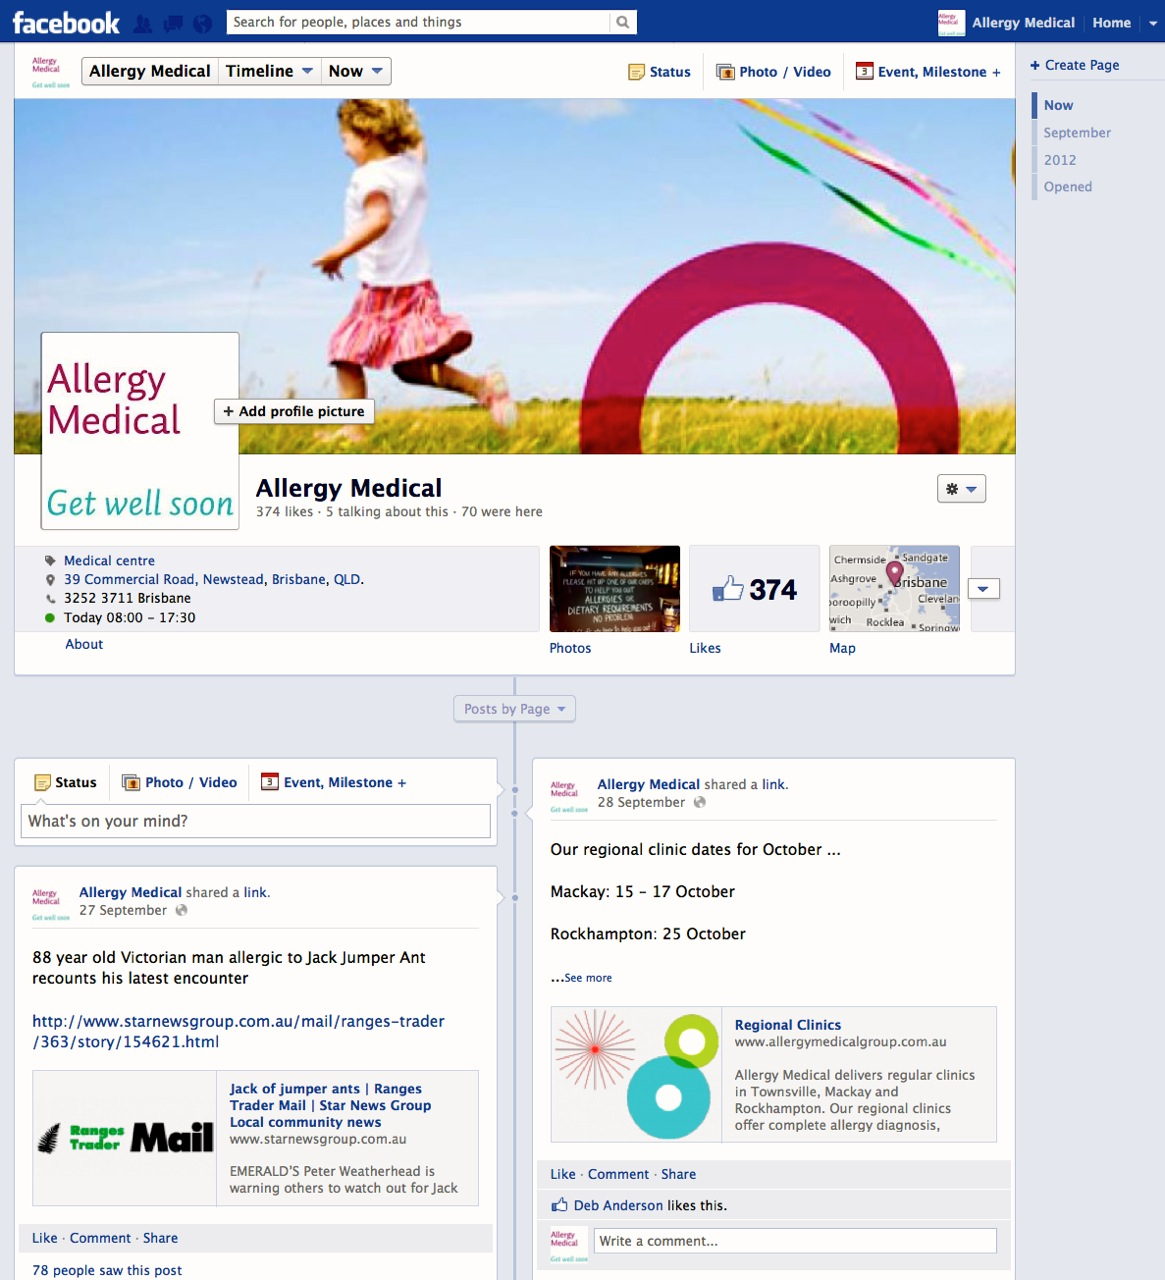 Allergy Medical Facebook page